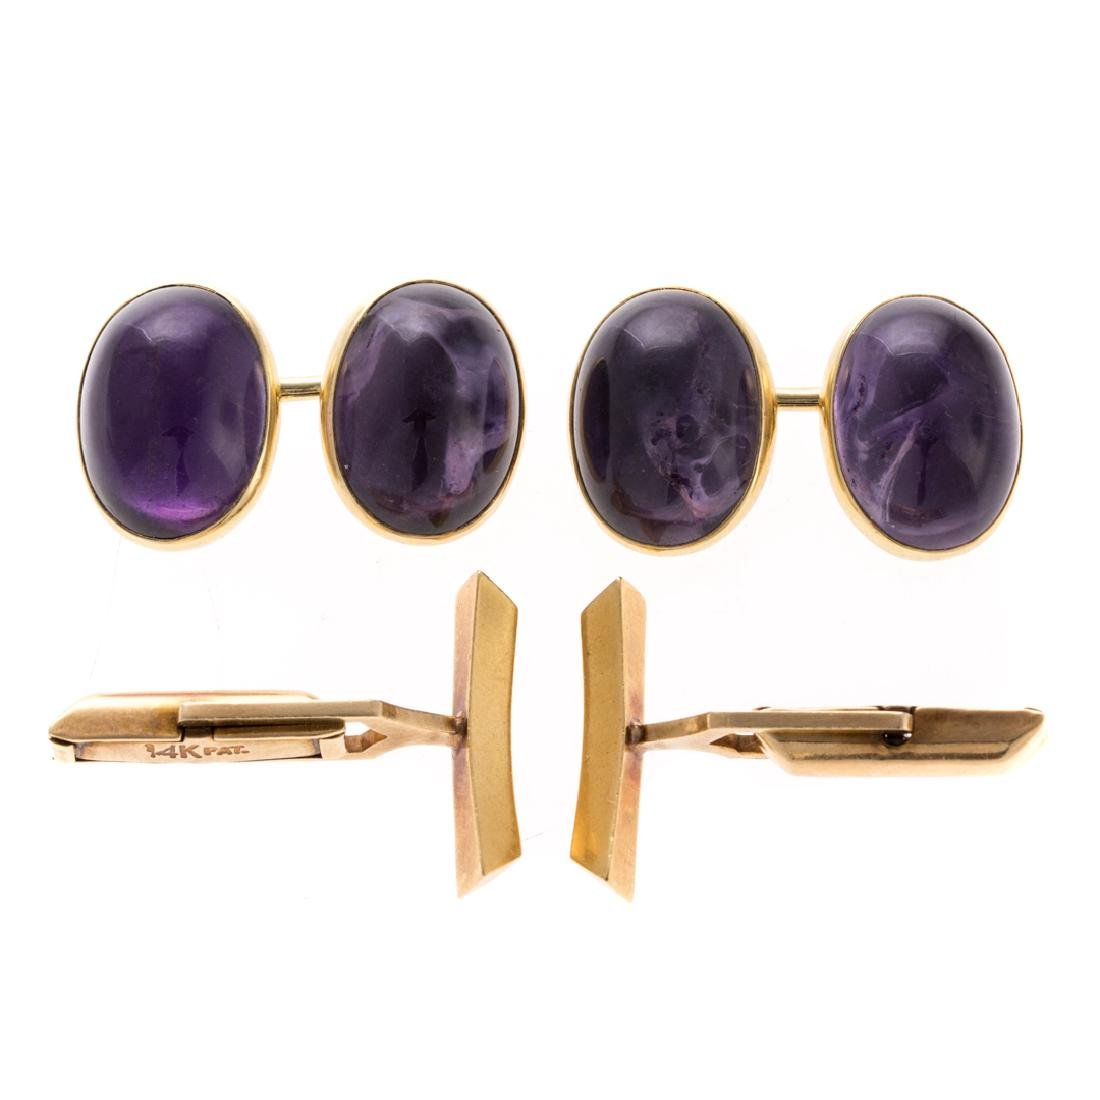 Two Pairs of Gent's Cufflinks in Gold